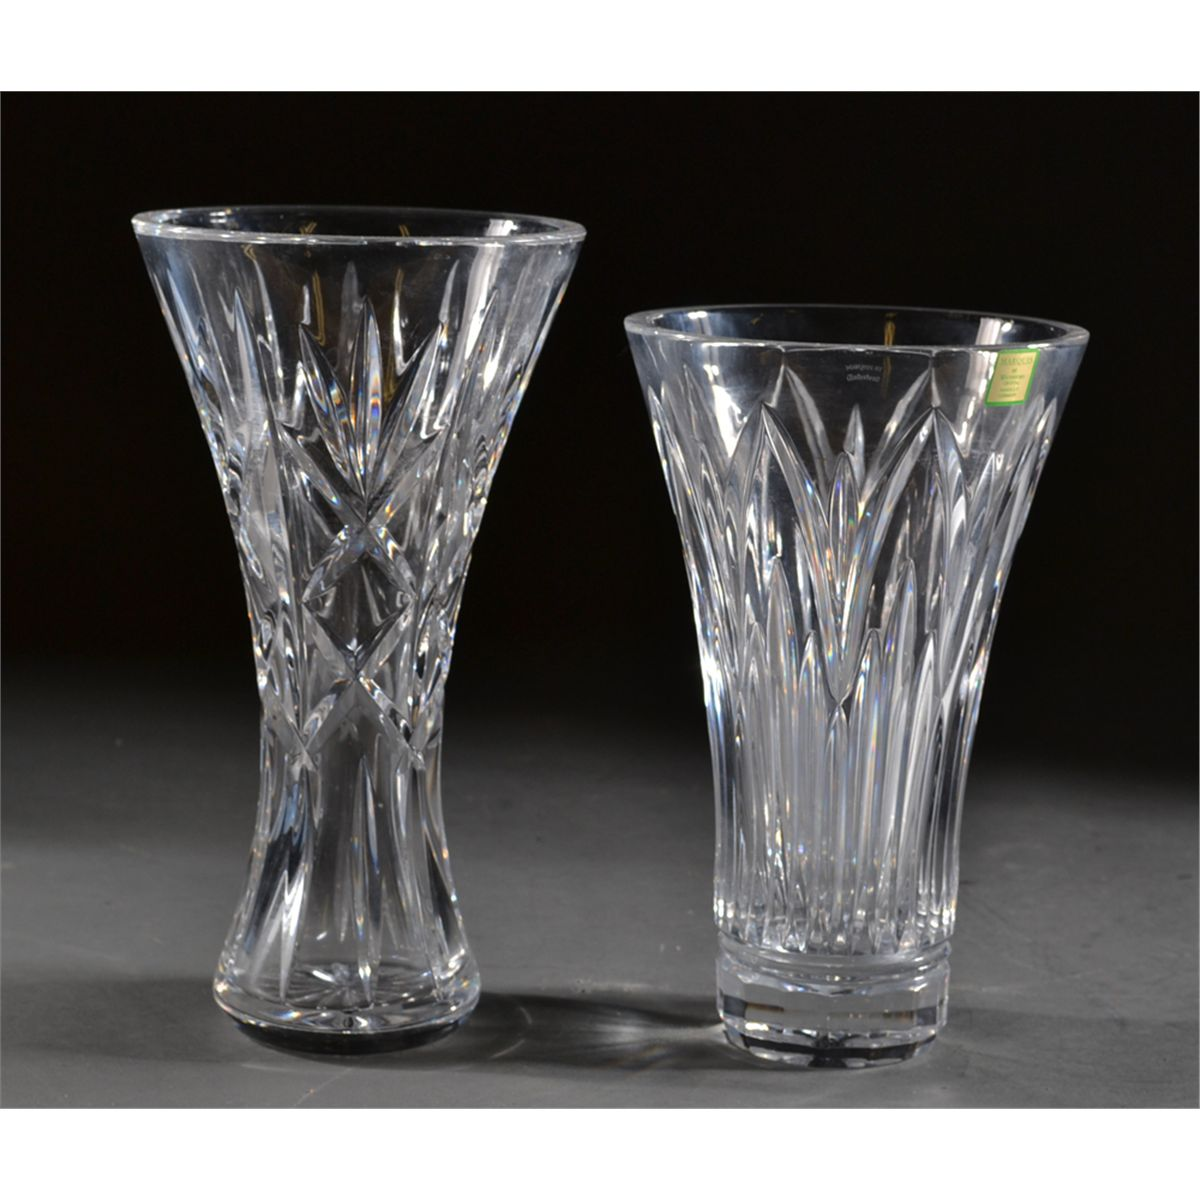 2 waterford crystal vases 2 waterford crystal vases floridaeventfo Image collections